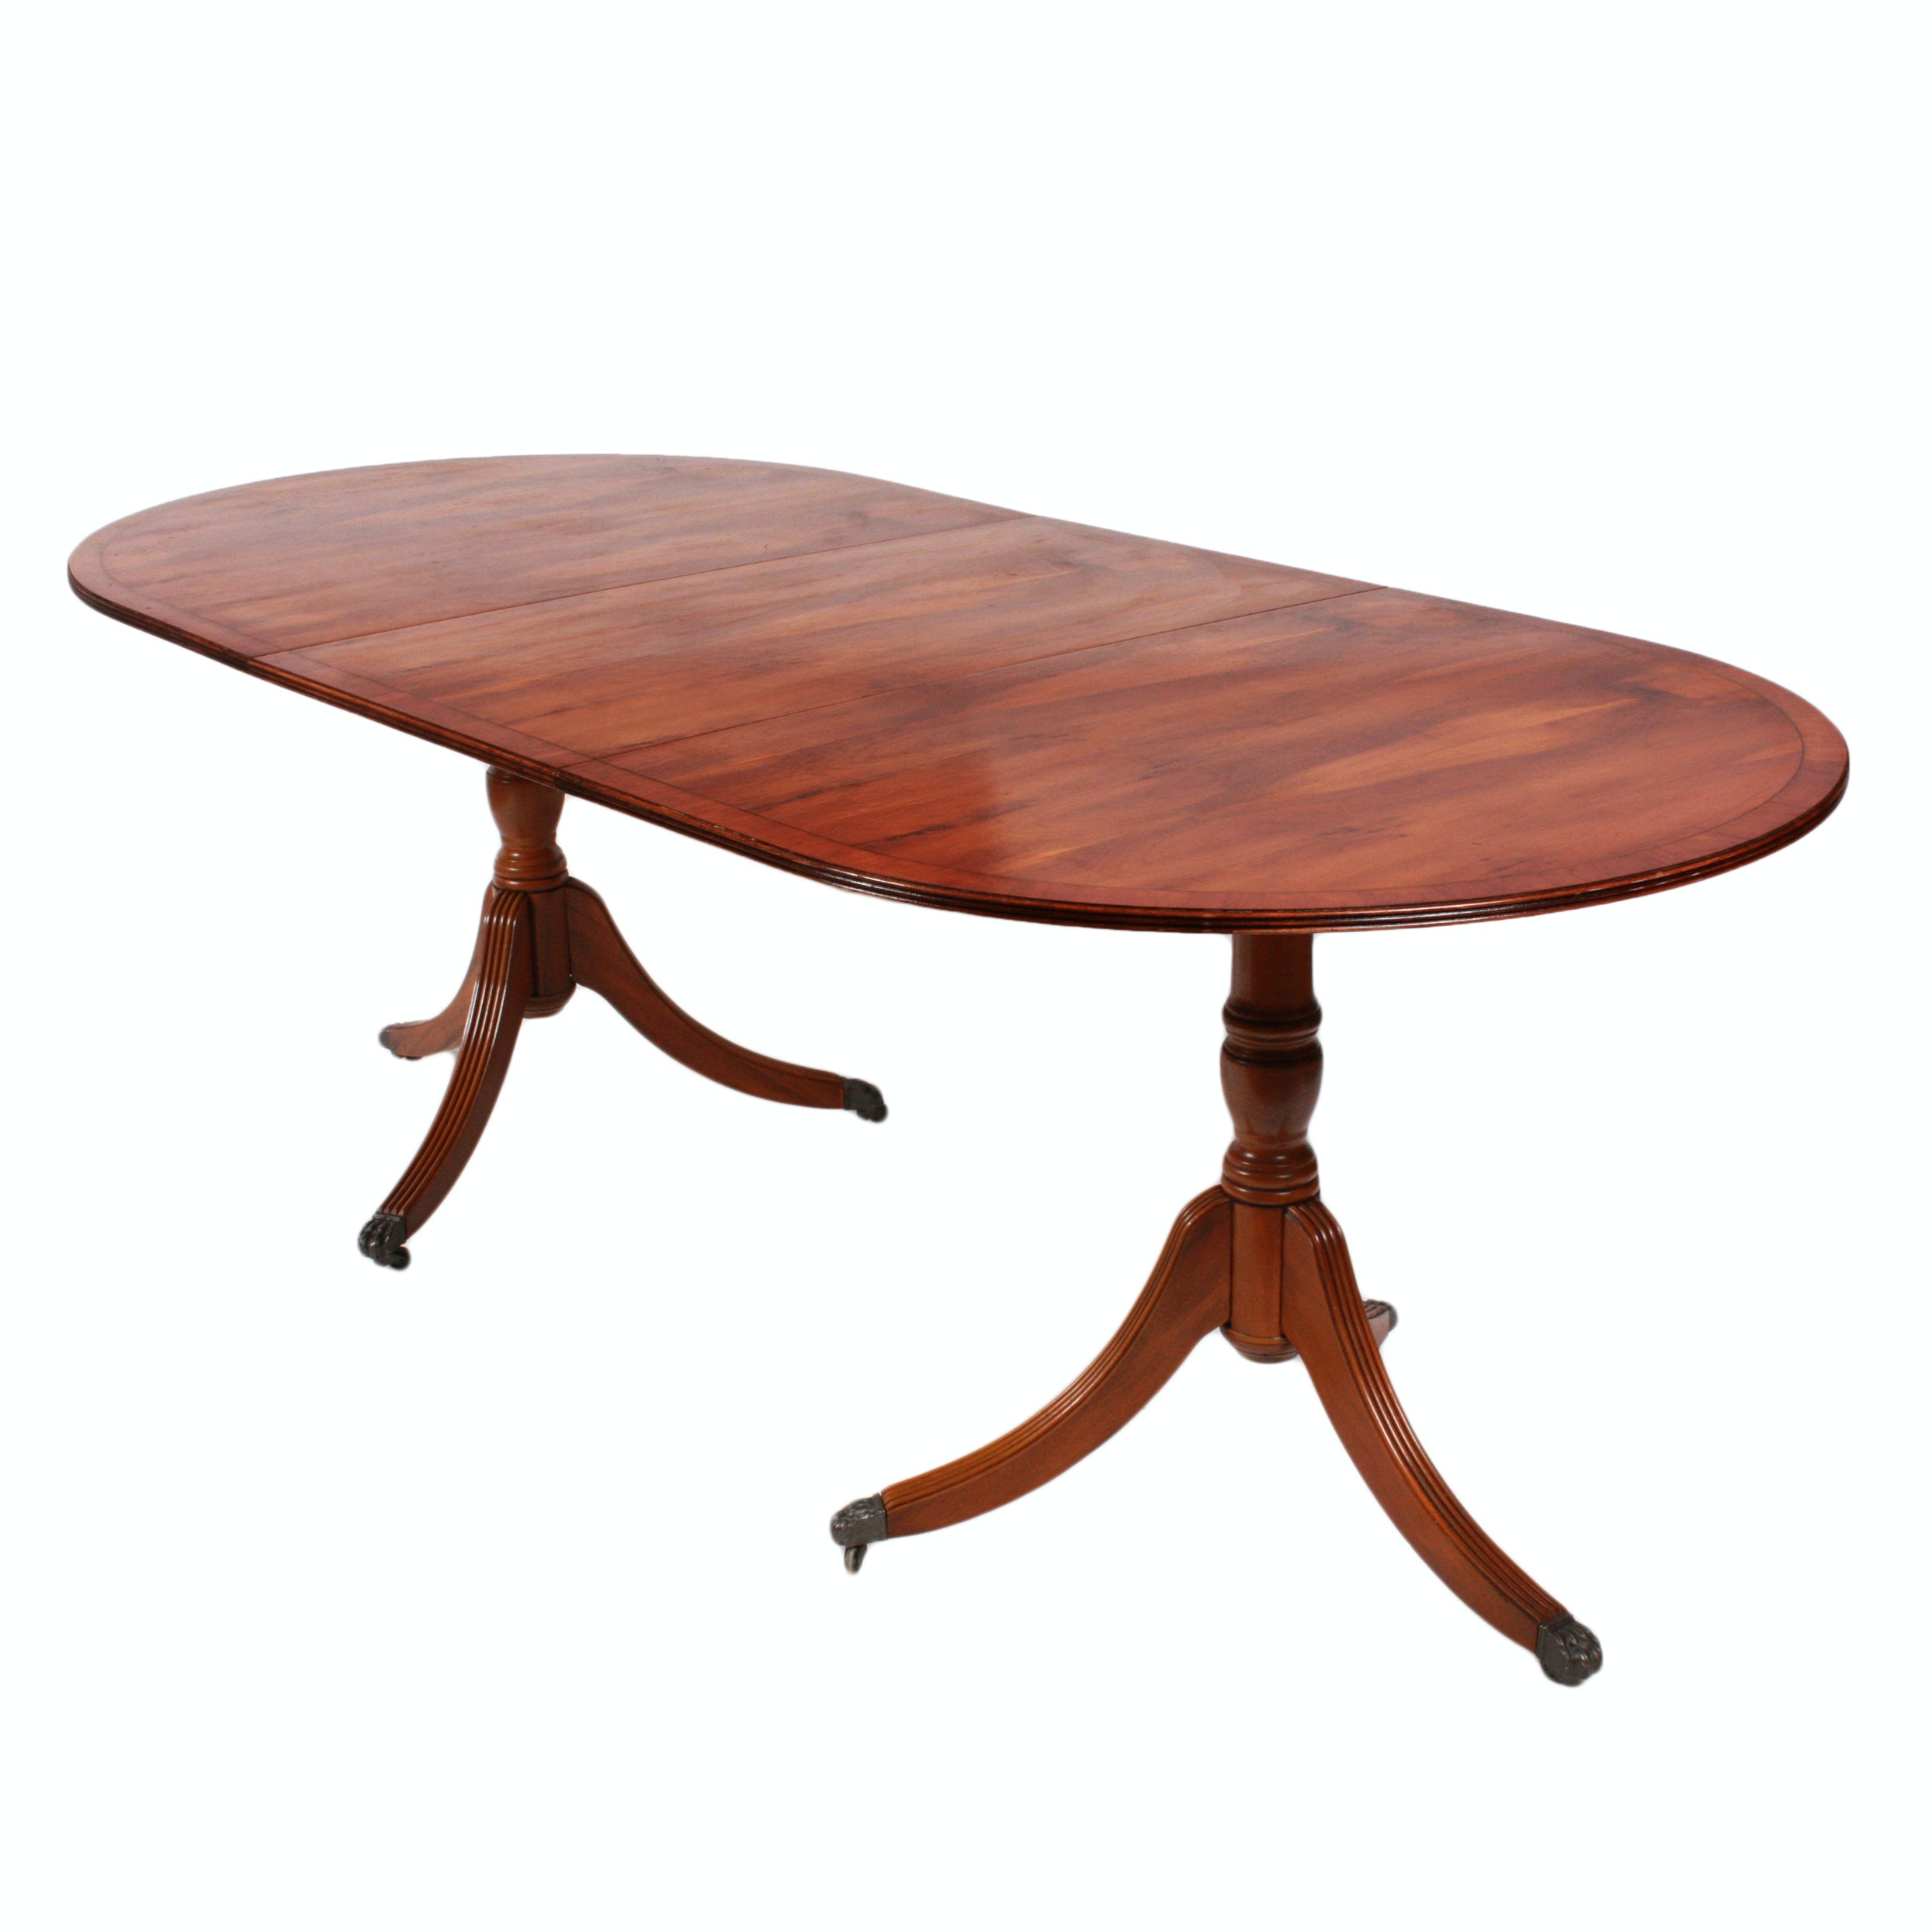 Duncan Phyfe Style Yew Wood Double Pedestal Dining Table